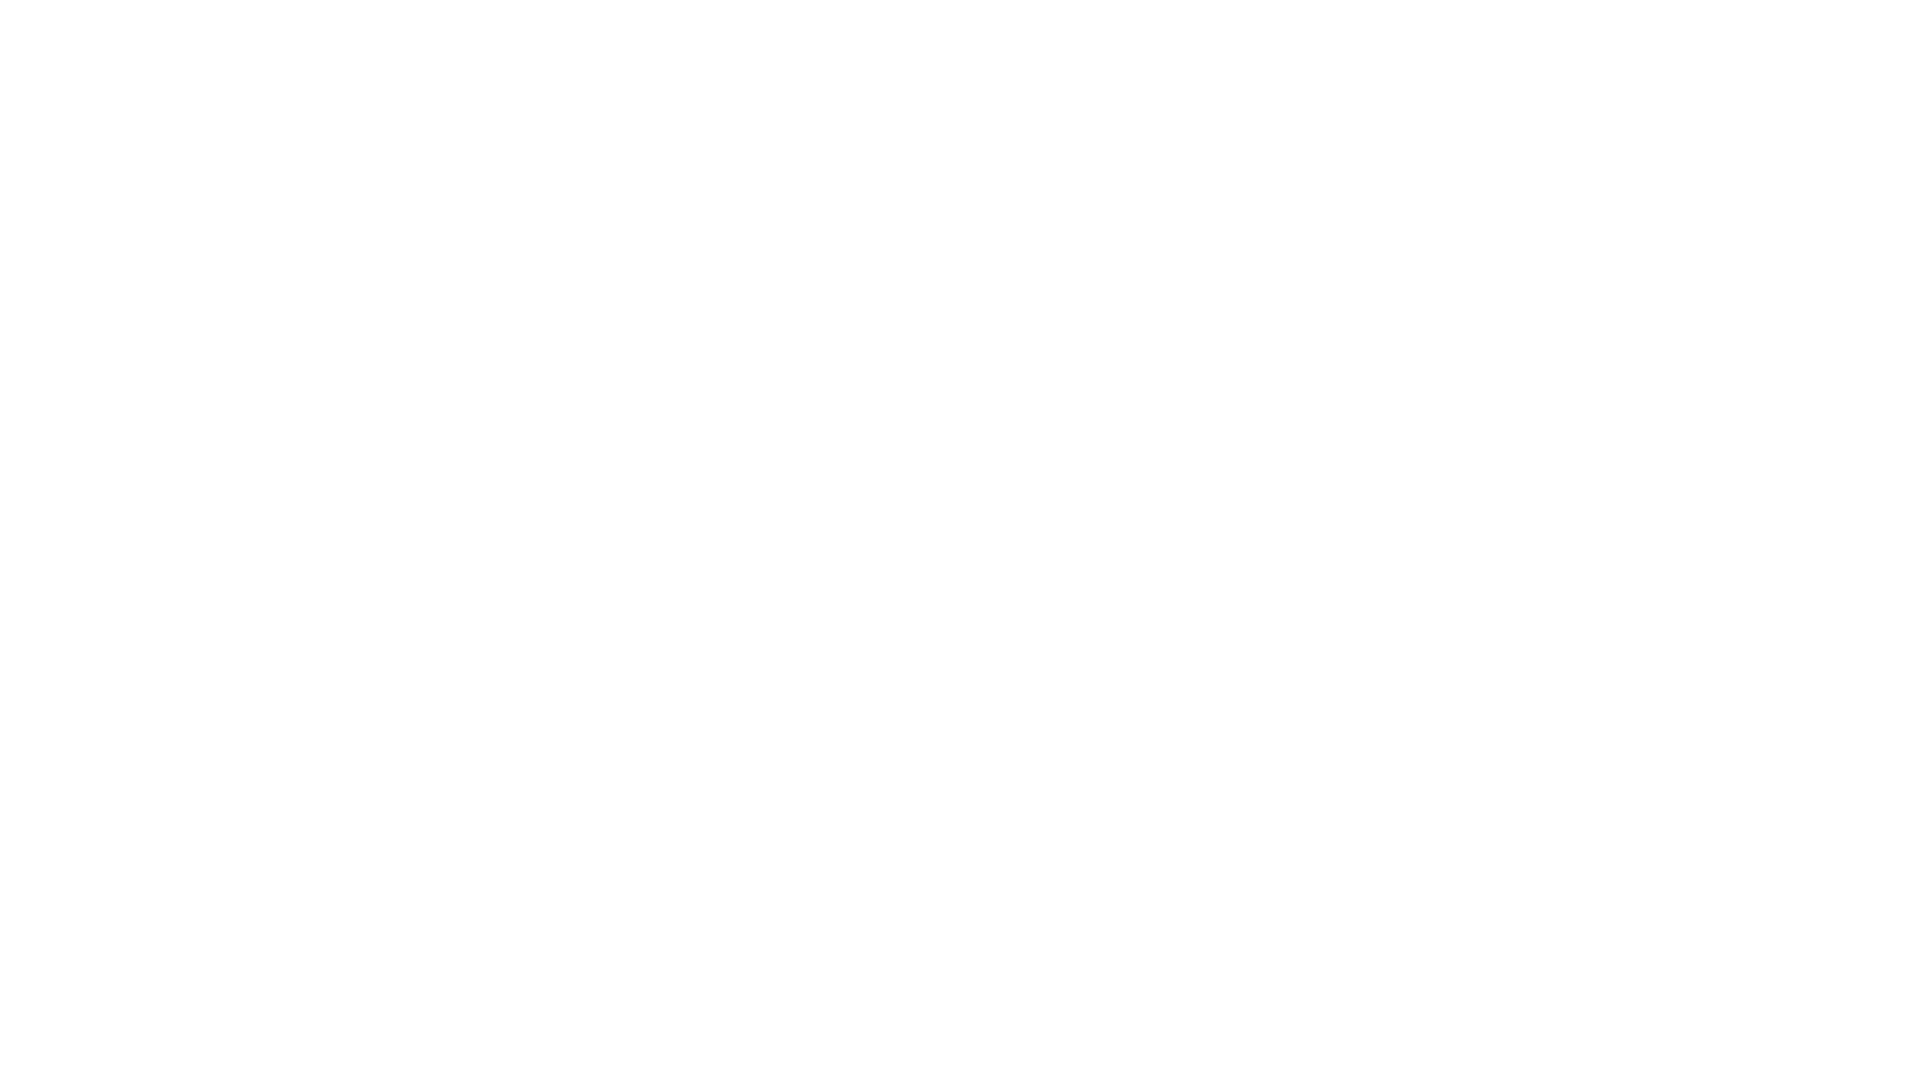 Real Life Stories_Web Text-02.png